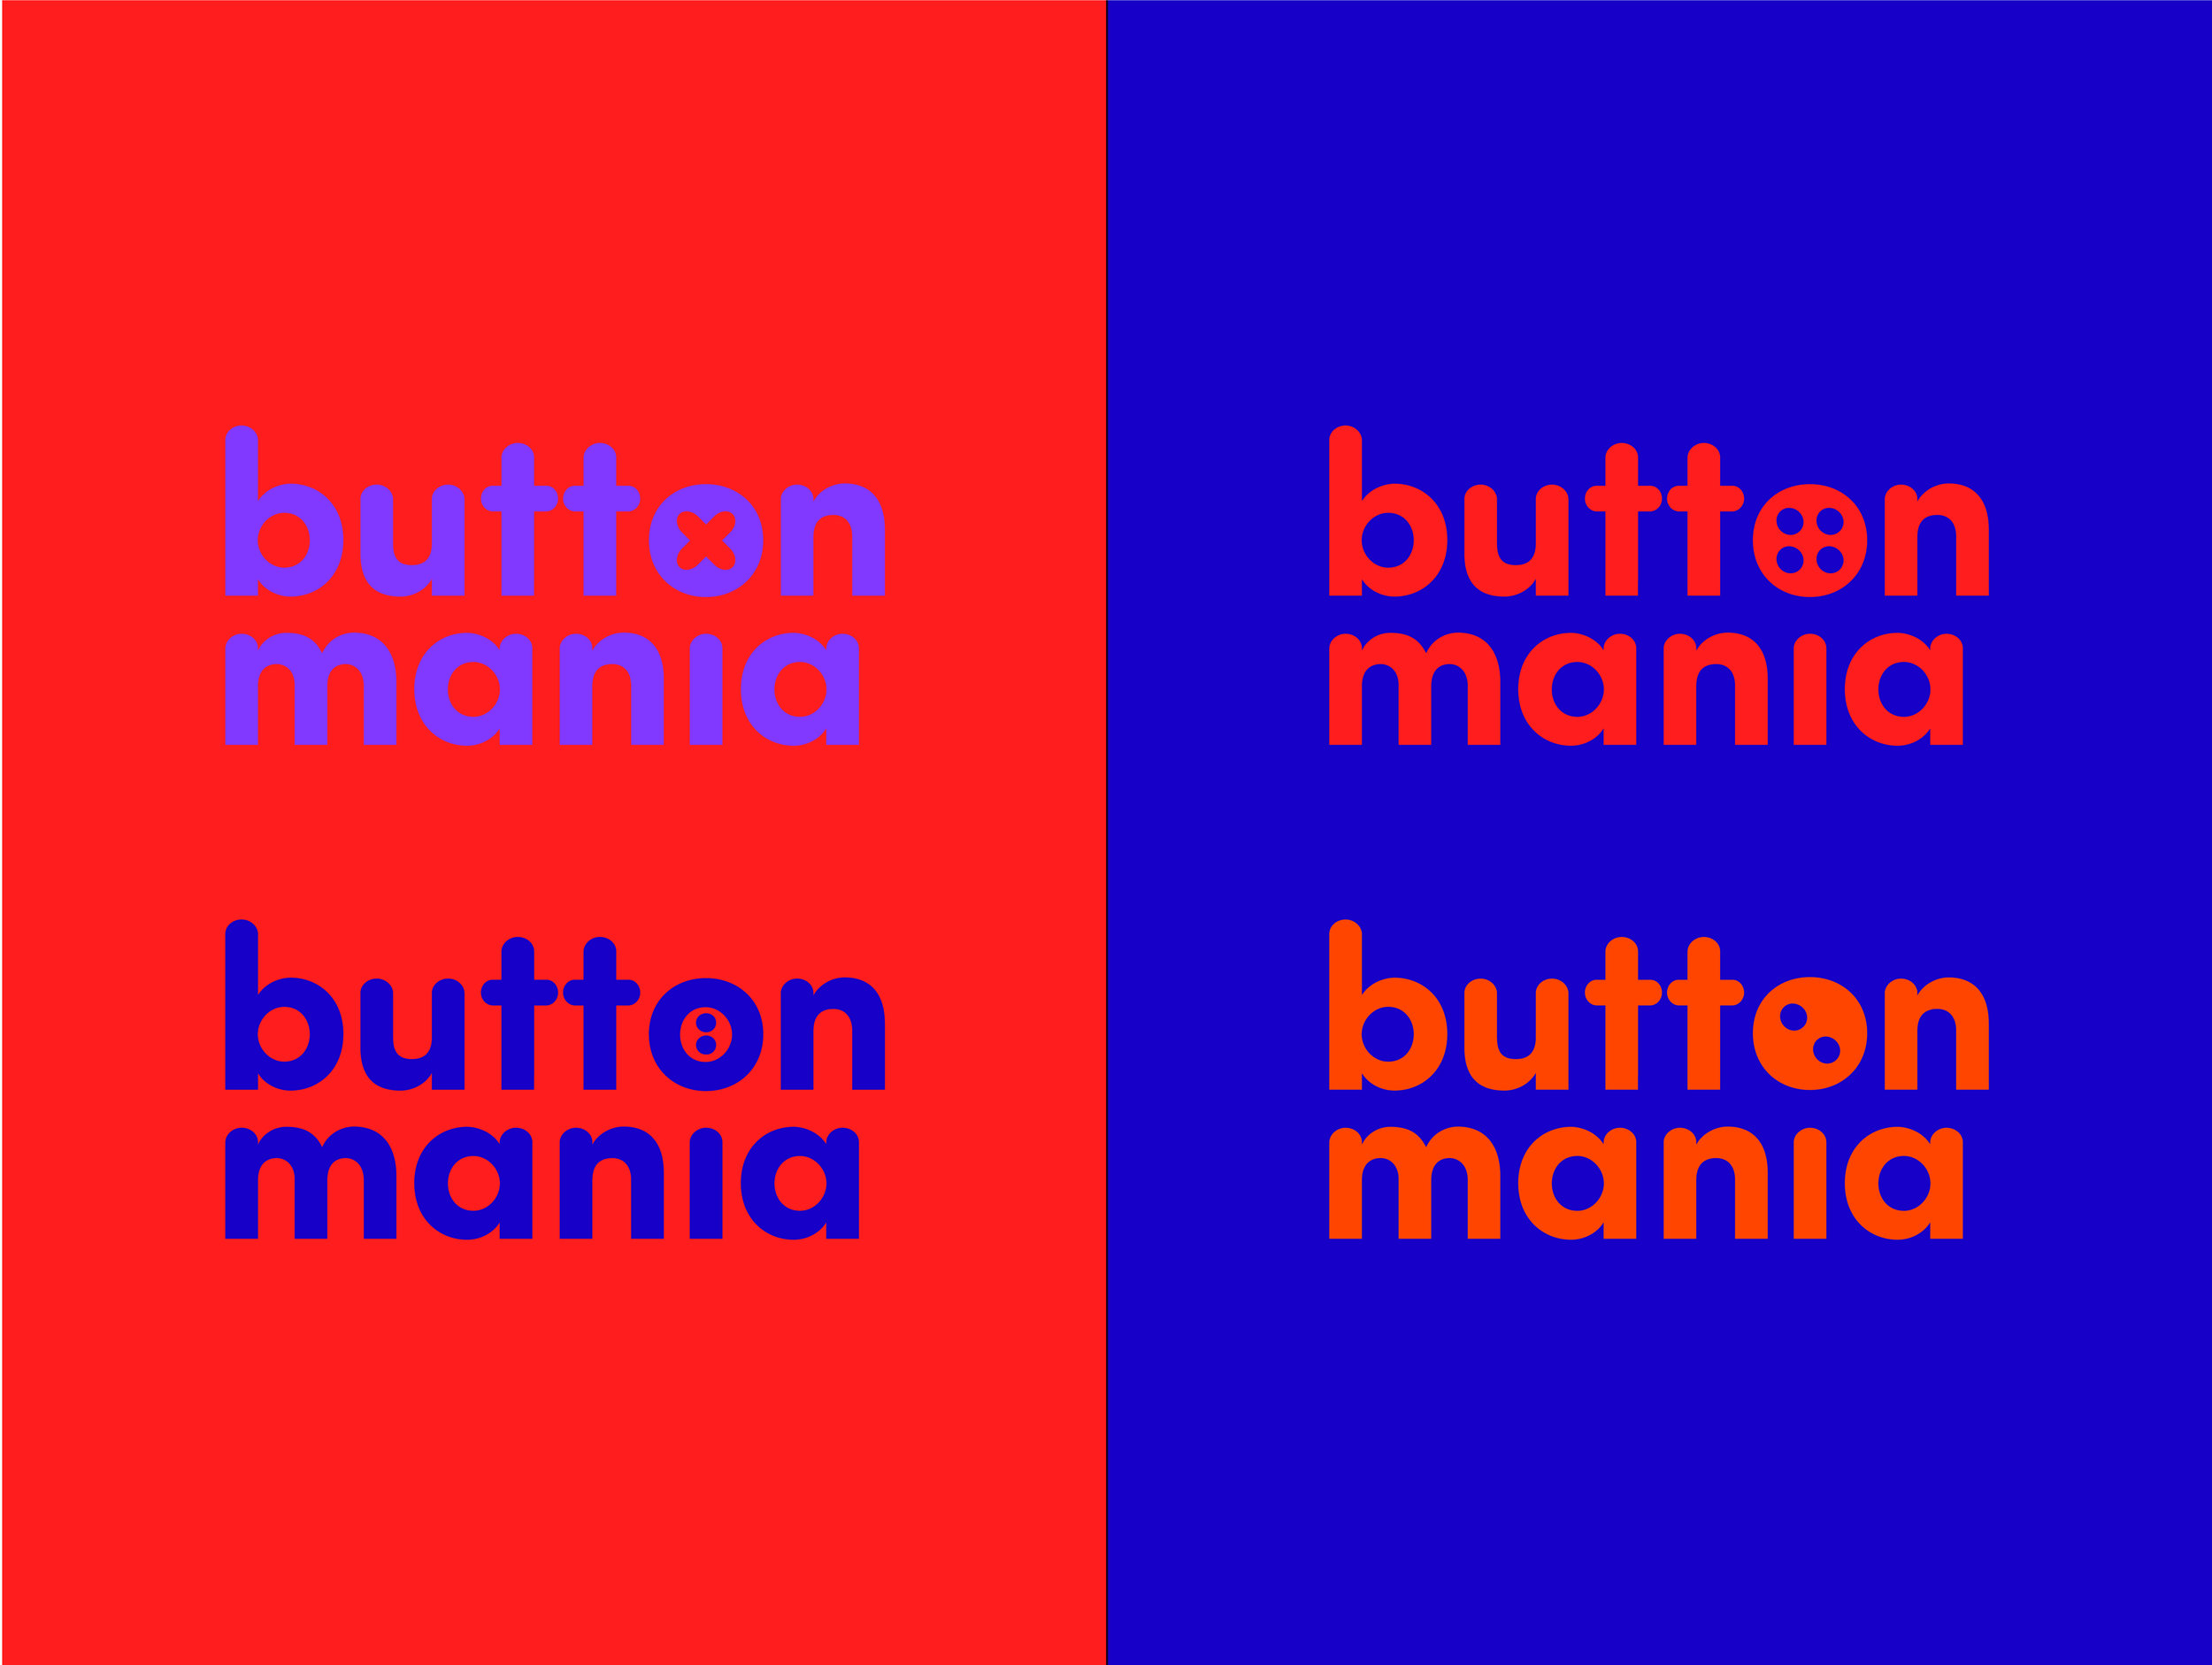 01buttonmania mark 2.jpg